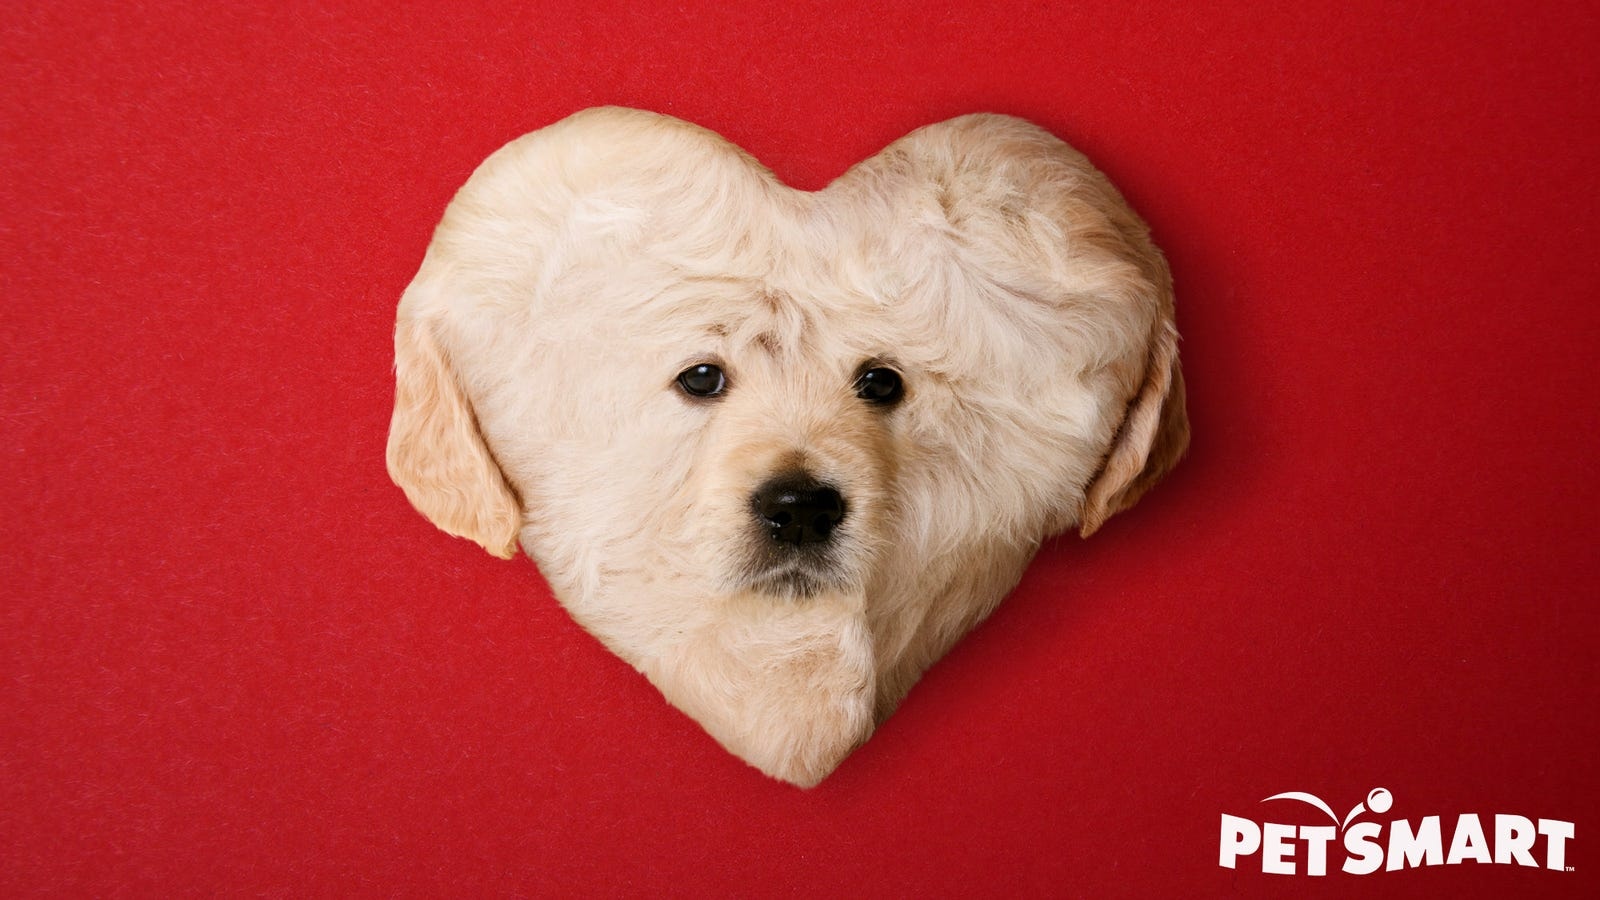 431da33d6dad PetSmart Introduces Heart-Shaped Puppy For Valentine's Day